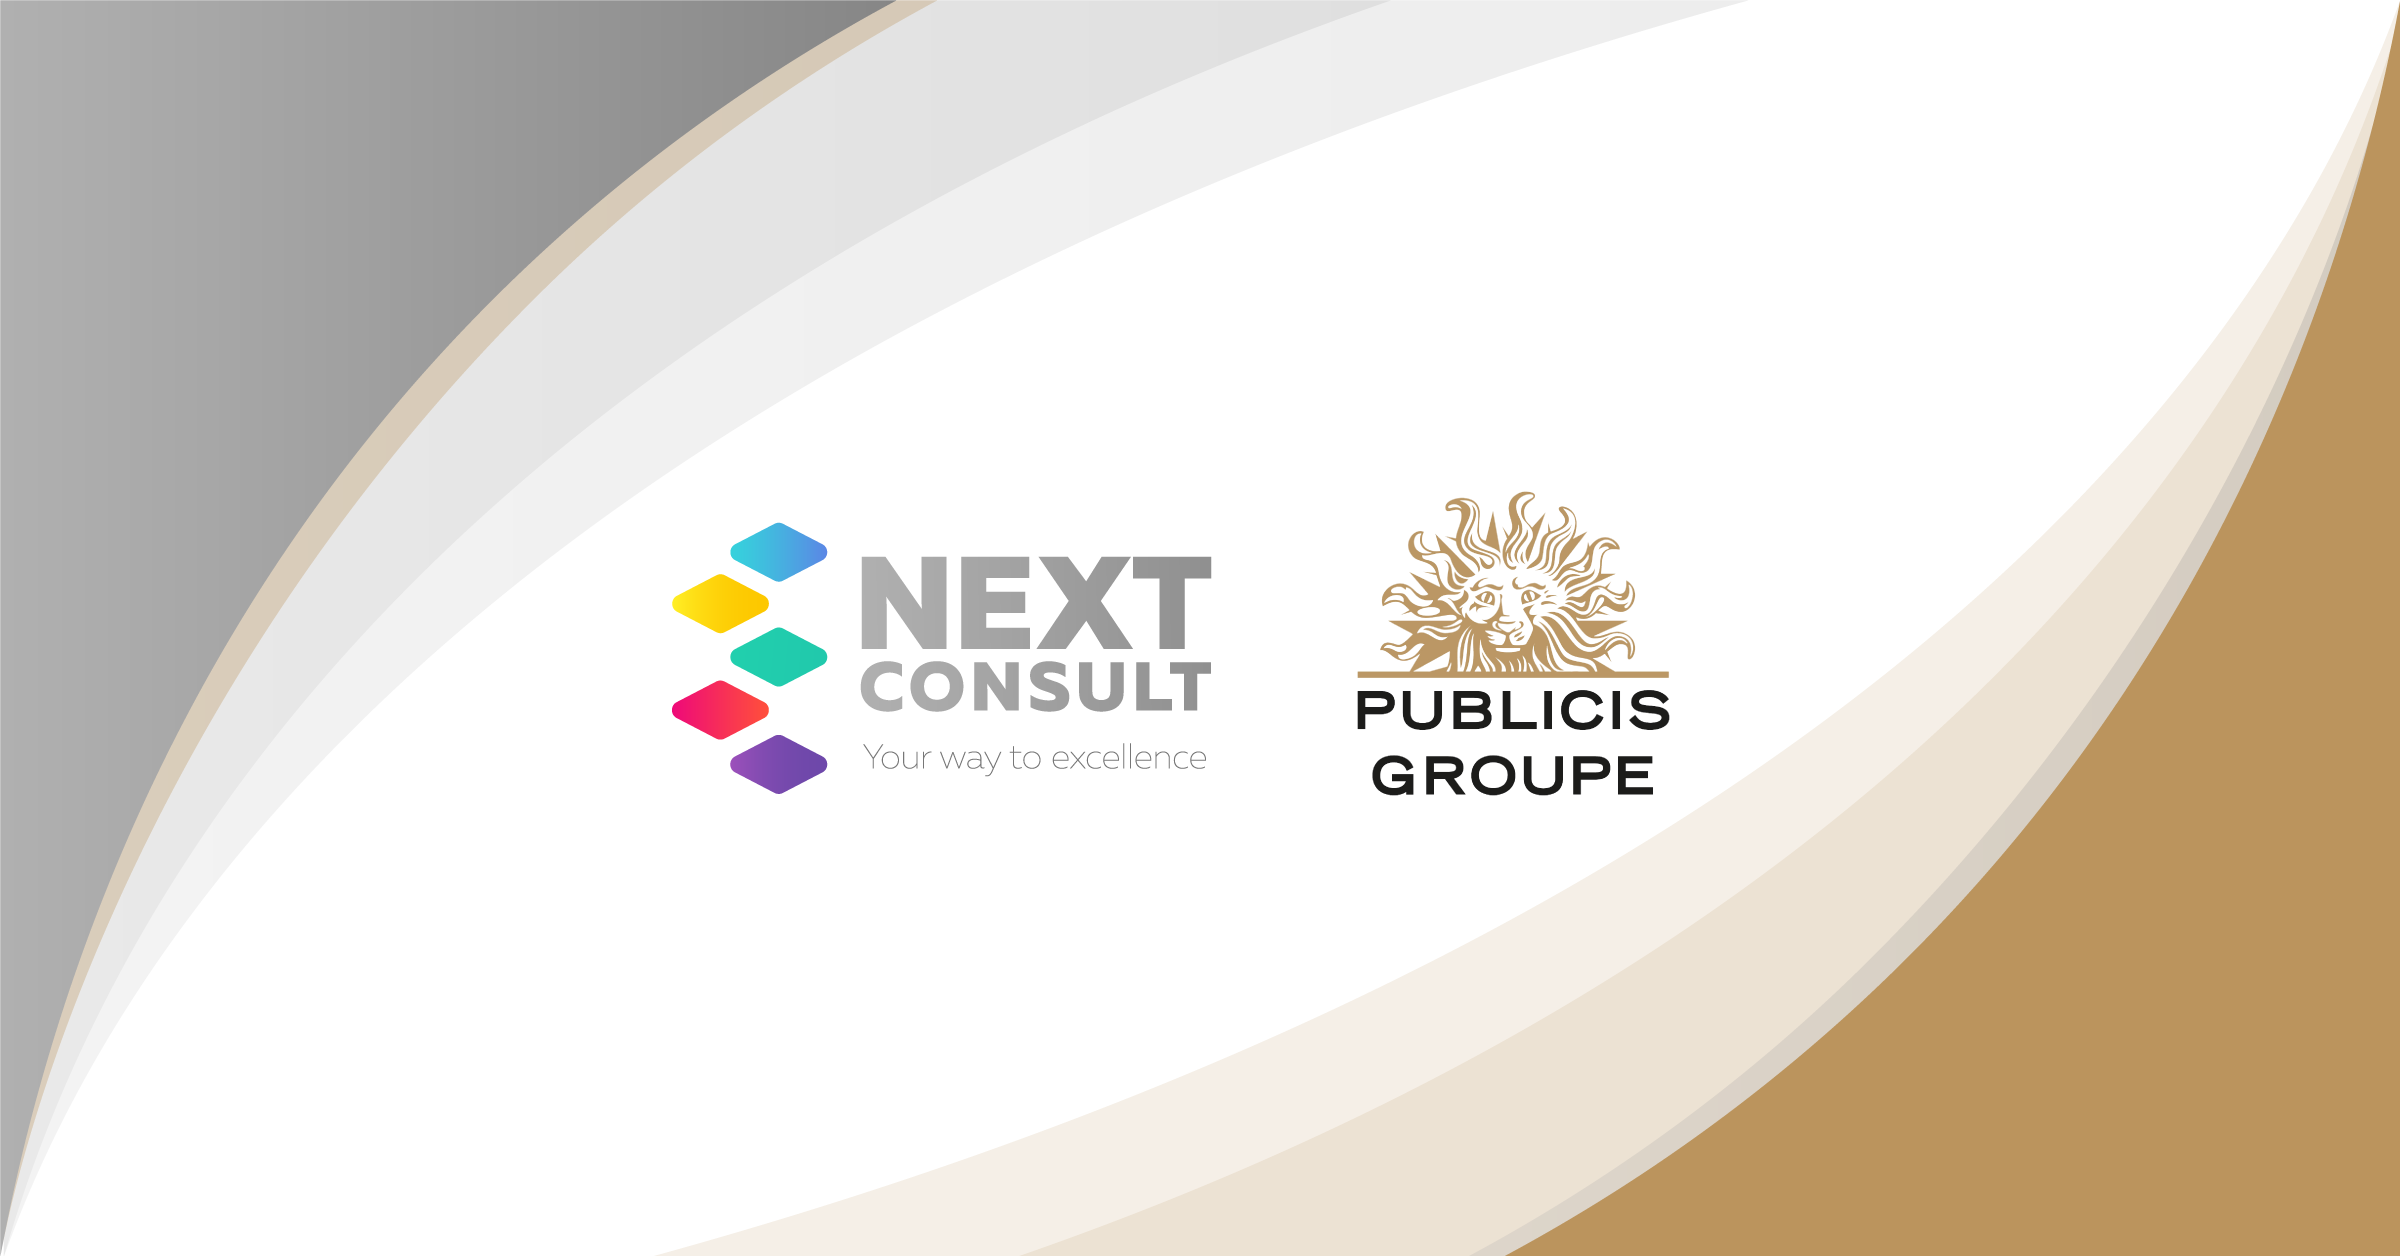 Next Consult and Publicis Groupe Bulgaria will partner on a customer experience management